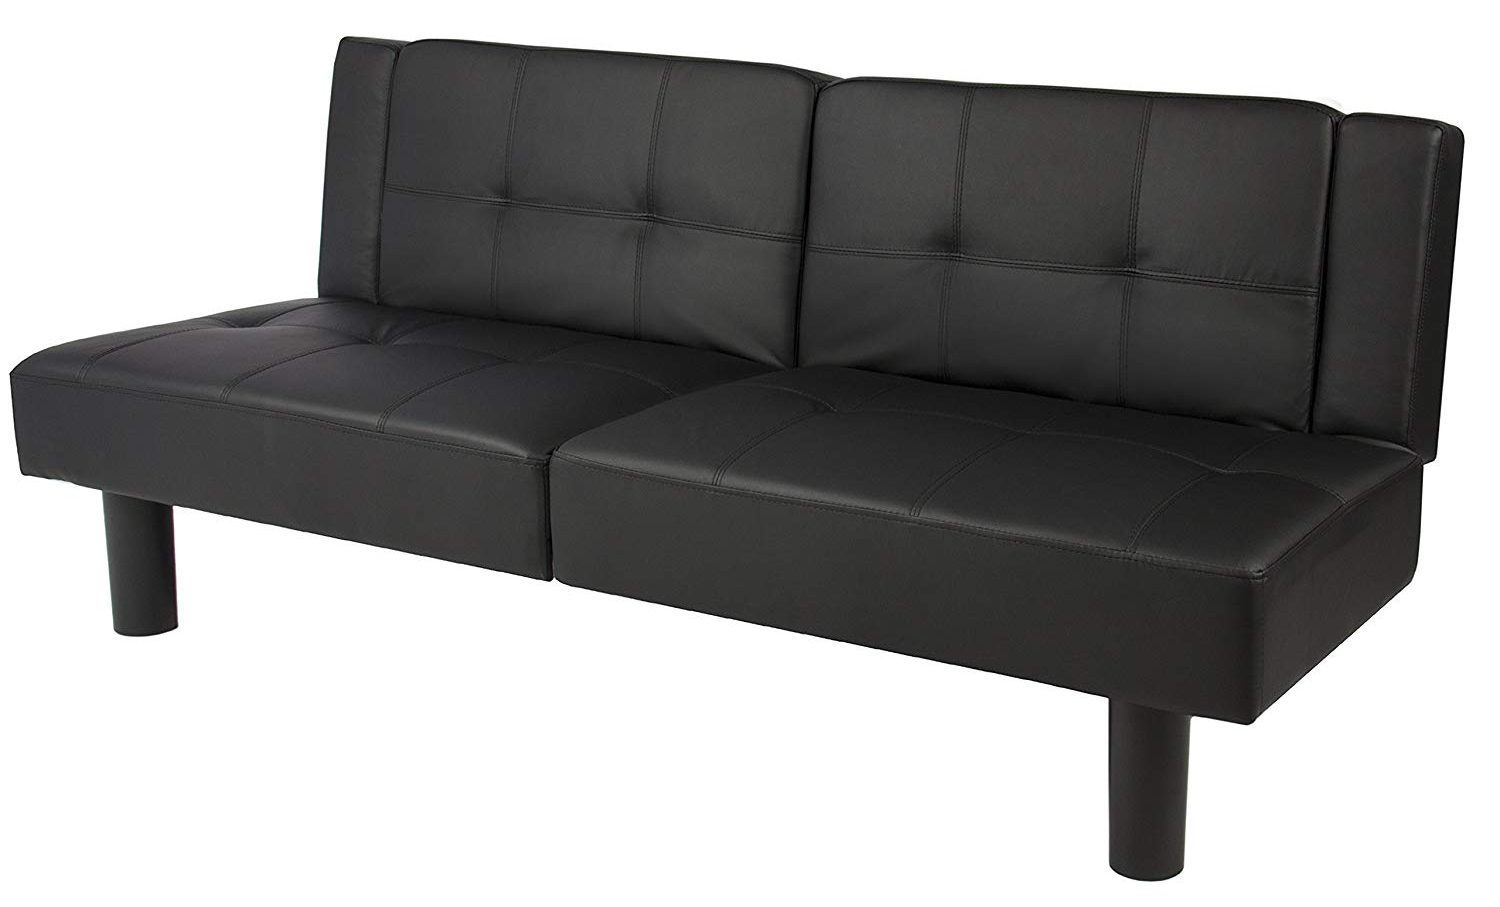 Luxury Futon Sofa Beds